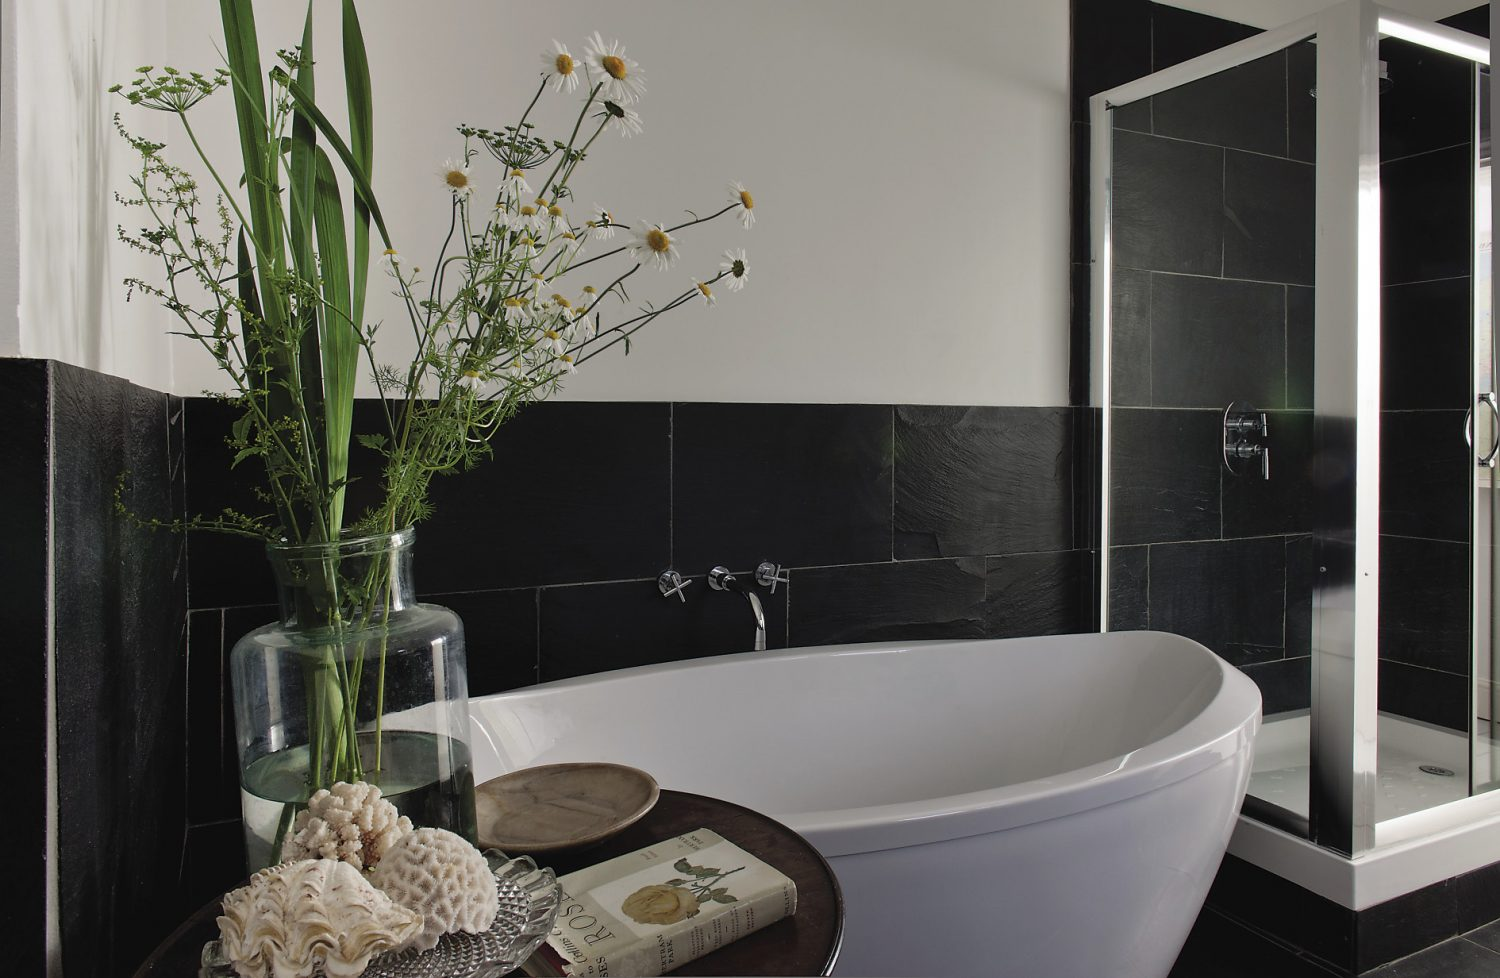 An immaculately presented bedroom and bathroom feature crisp monochrome colour schemes and more of Polly's freshly-picked flower arrangements